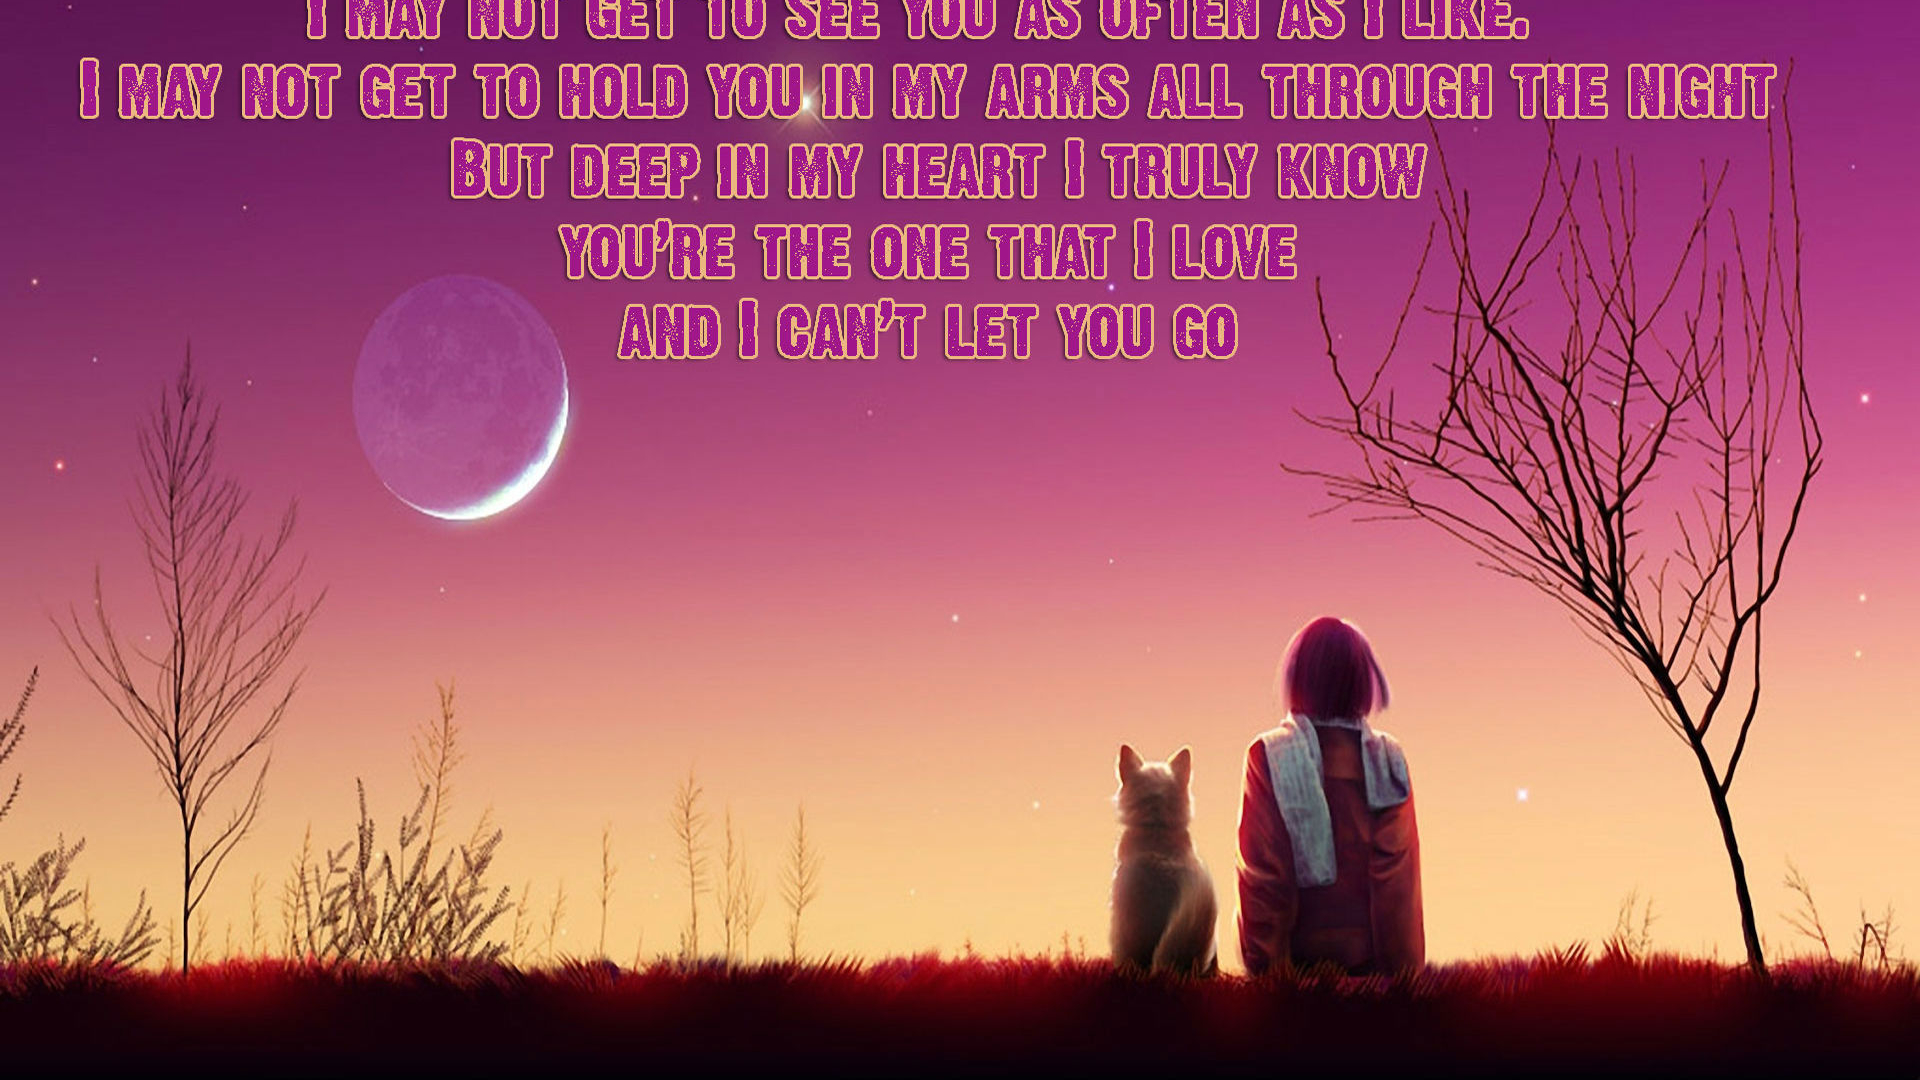 Free Download Cute Long Distance Relationship Quote Hd Wallpapers 1920x1200 For Your Desktop Mobile Tablet Explore 46 Long Distance Relationship Wallpaper Long Distance Relationship Wallpaper Distance Wallpapers Relationship Wallpaper